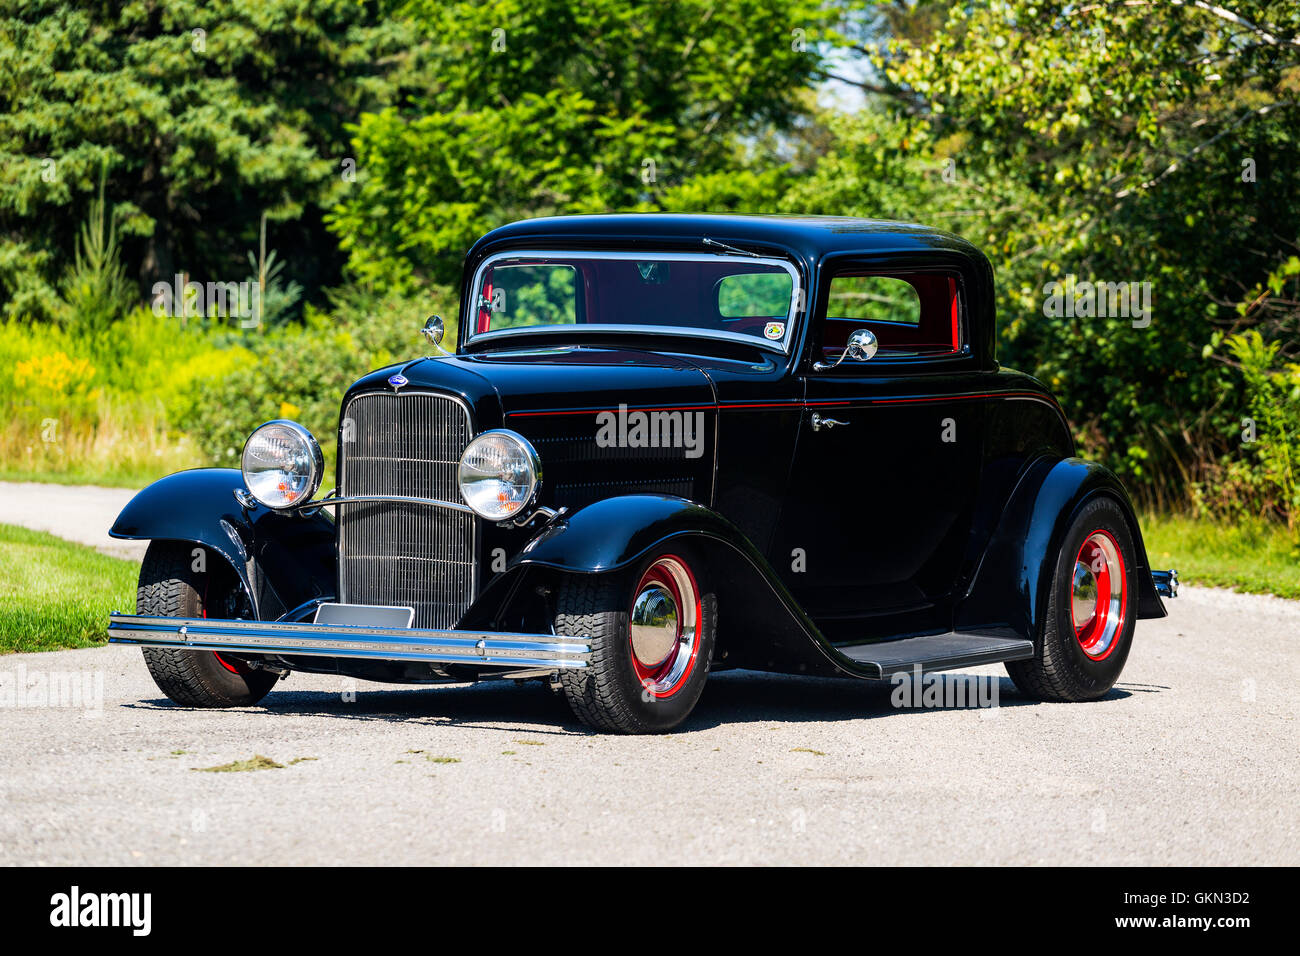 1932 Ford 3 Window Coupe Hot Rod Stock Photo, Royalty Free Image ...